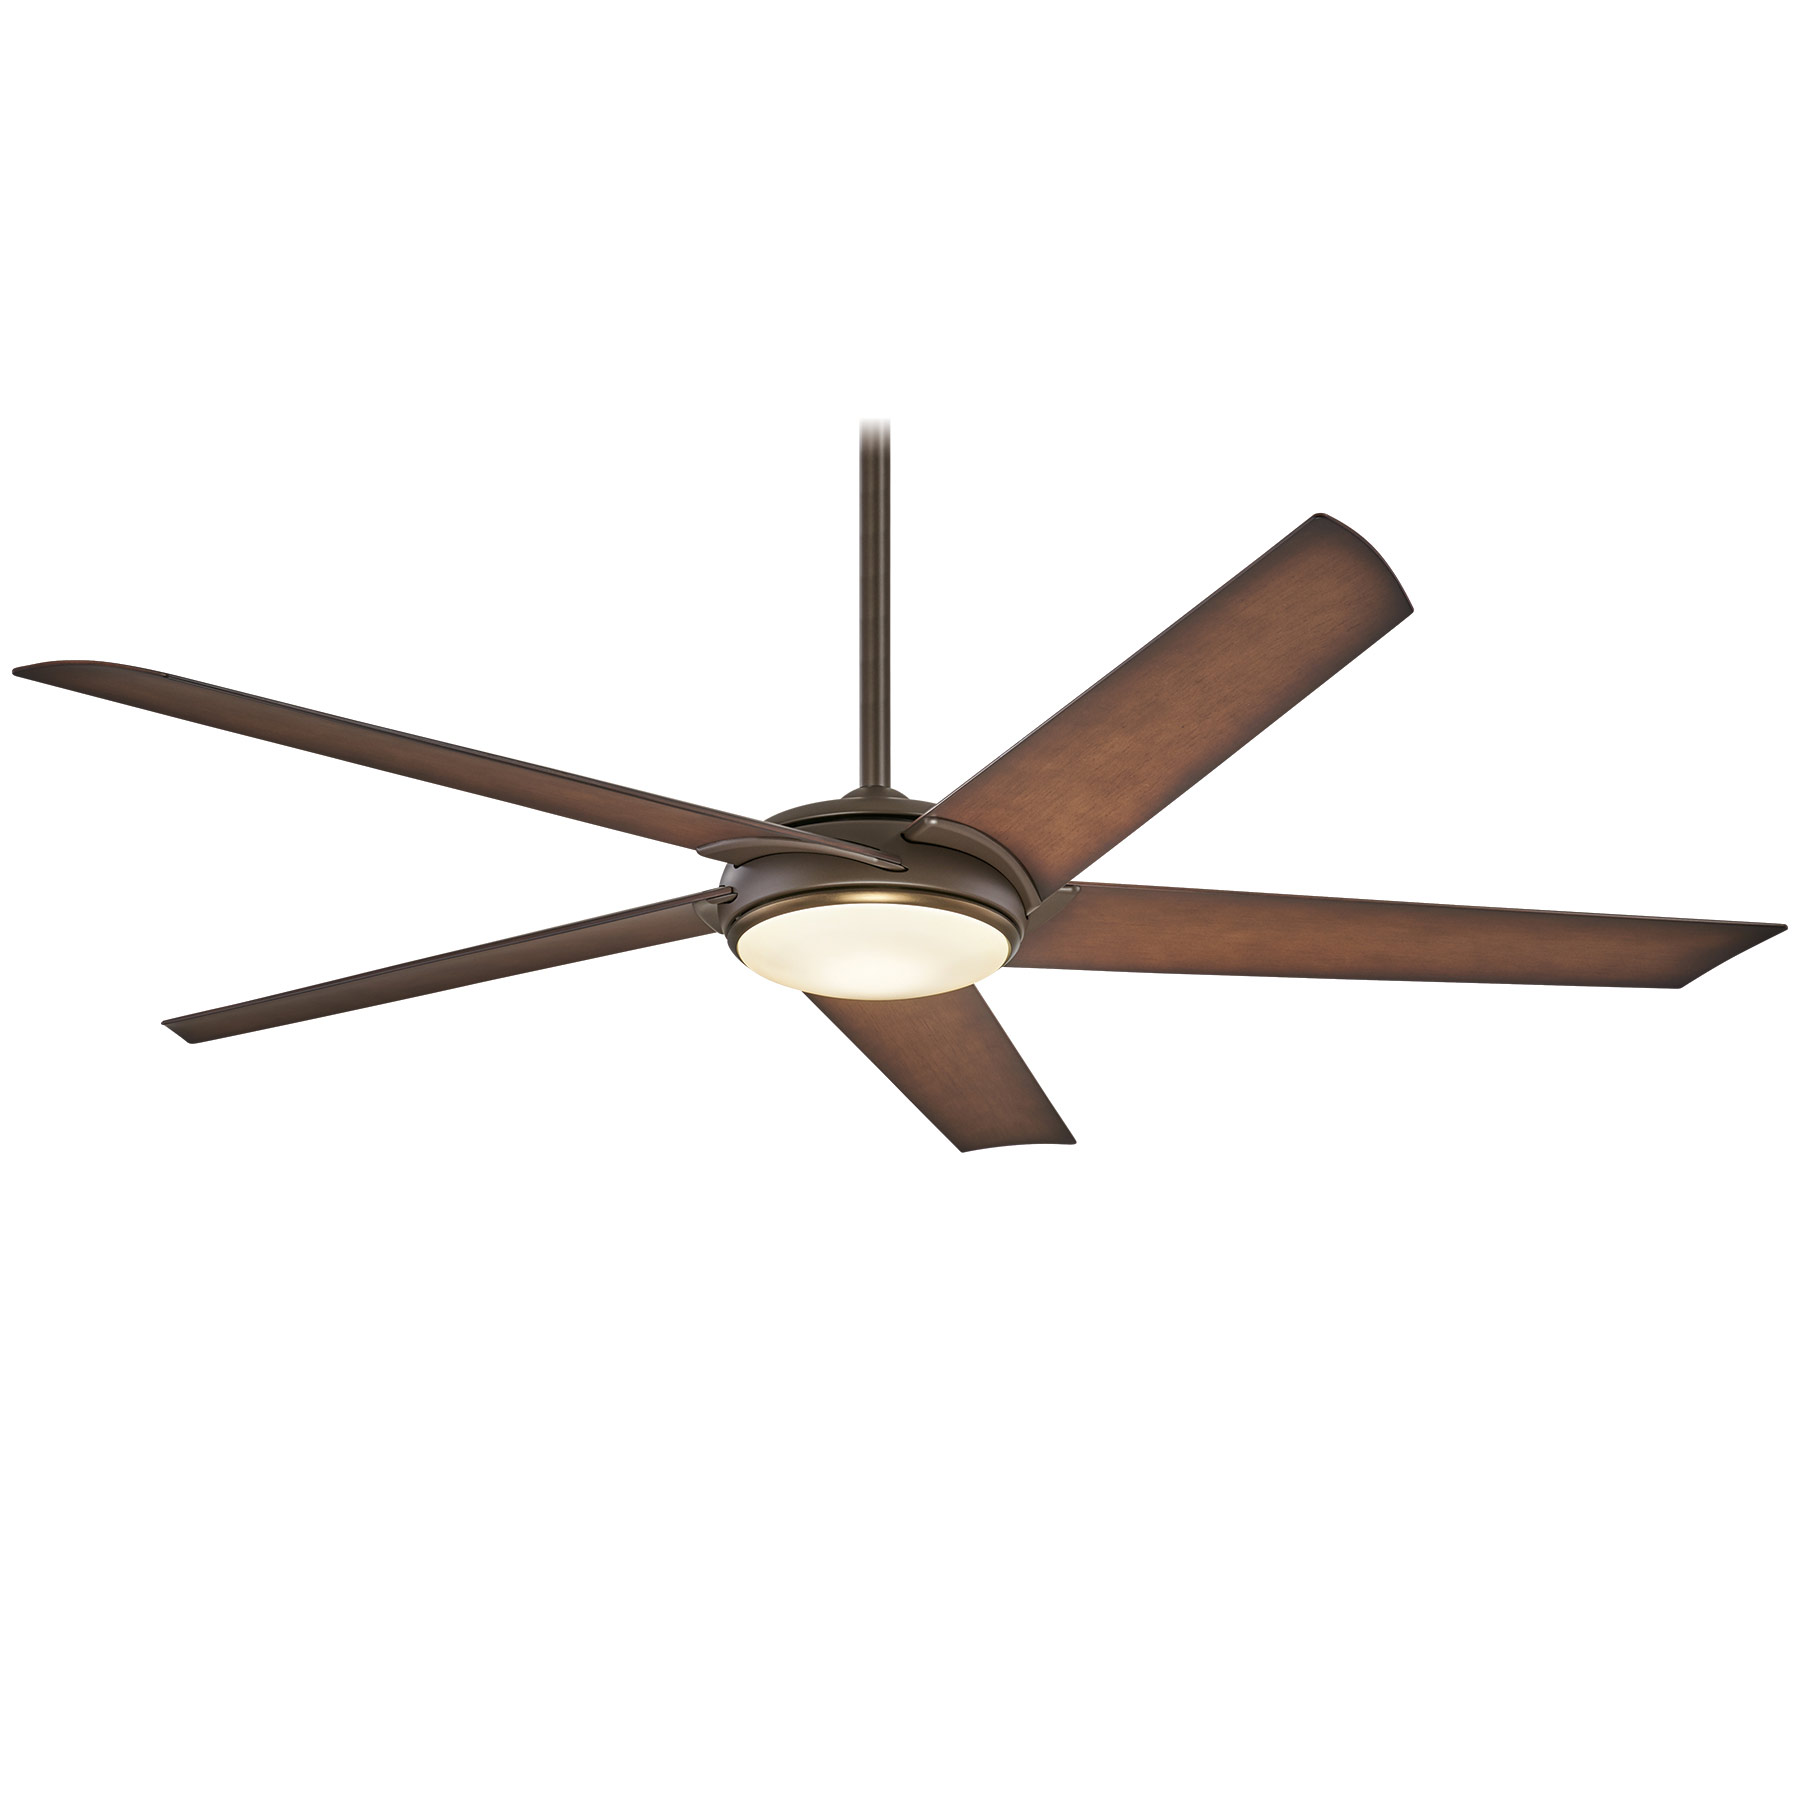 item capitol ceiling aire bn brushed fans minka lighting mojo in image finish nickel cfm shown fan magnifying inch blade glass